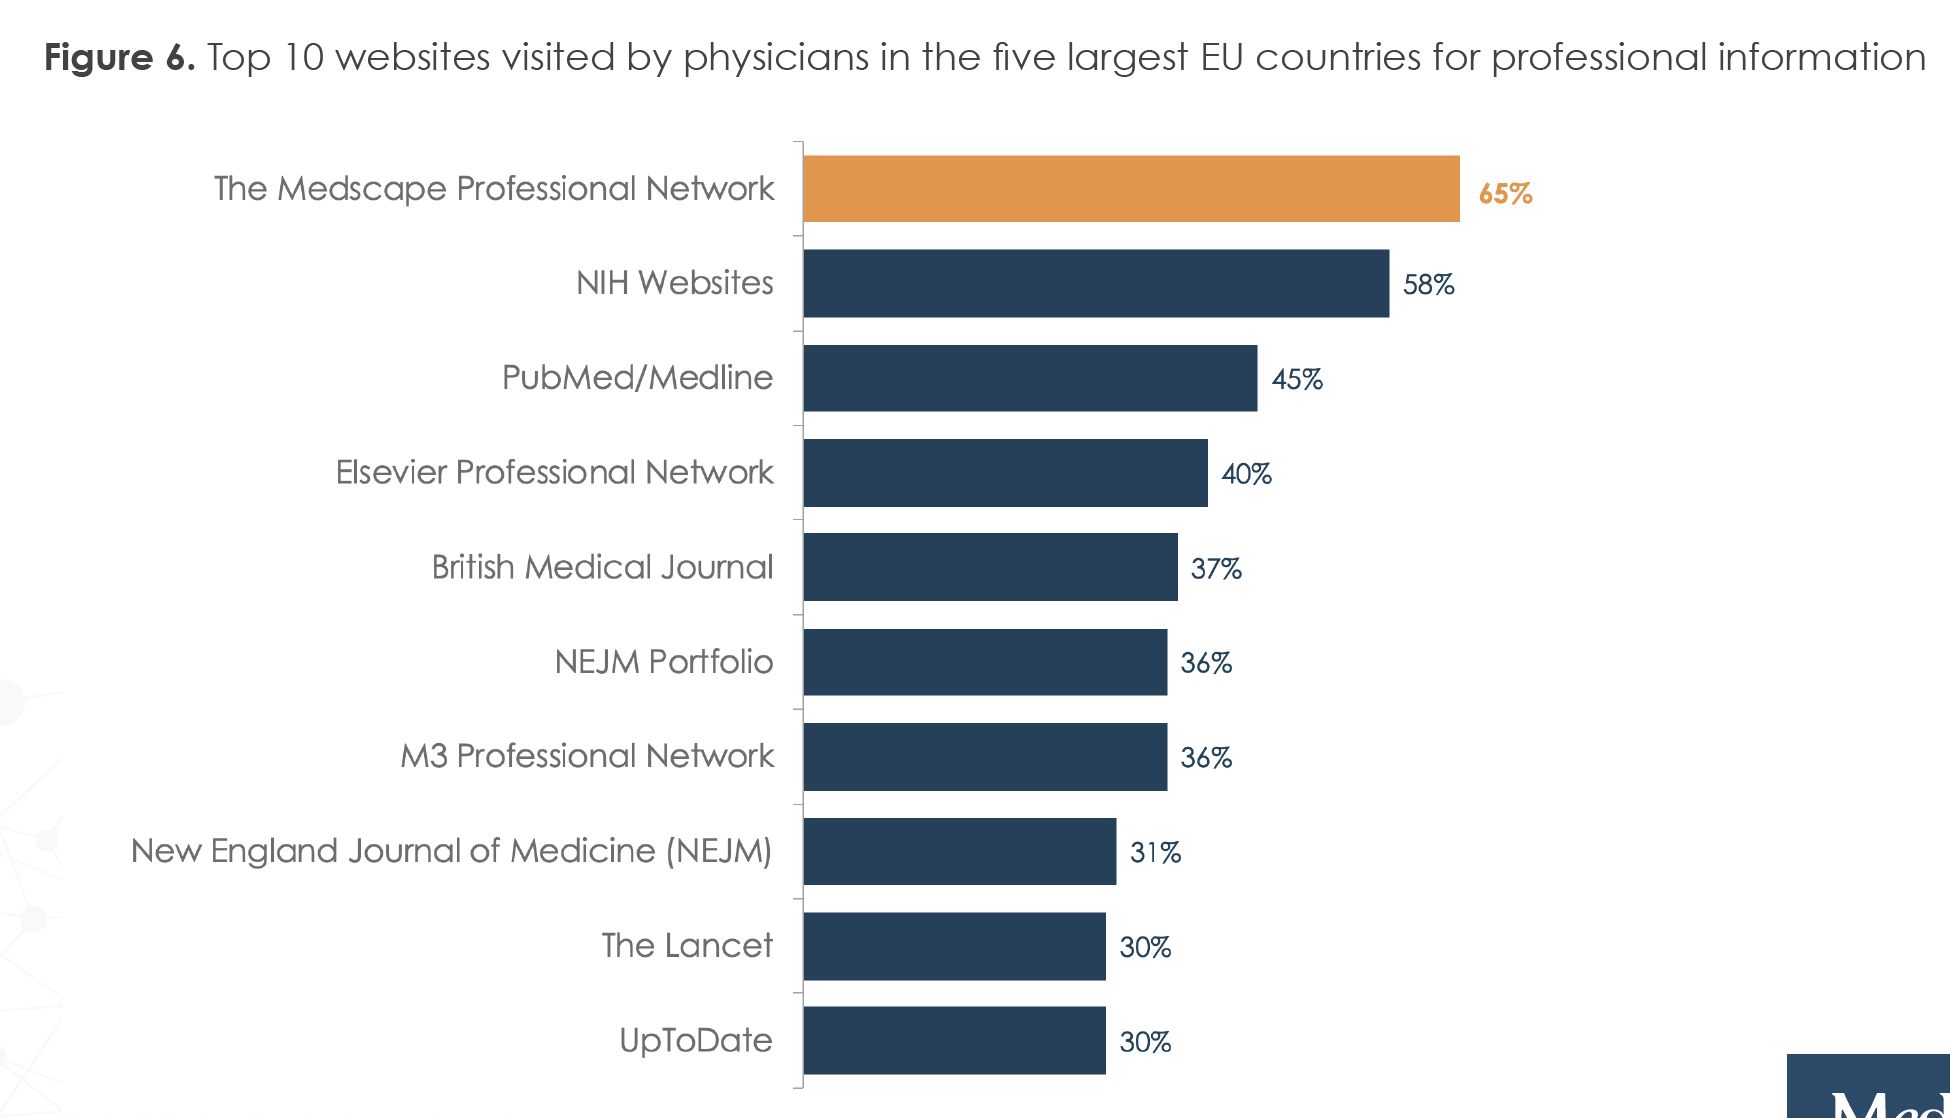 Figure 6. Top 10 websites visited by physicians in the five largest EU countries for professional information